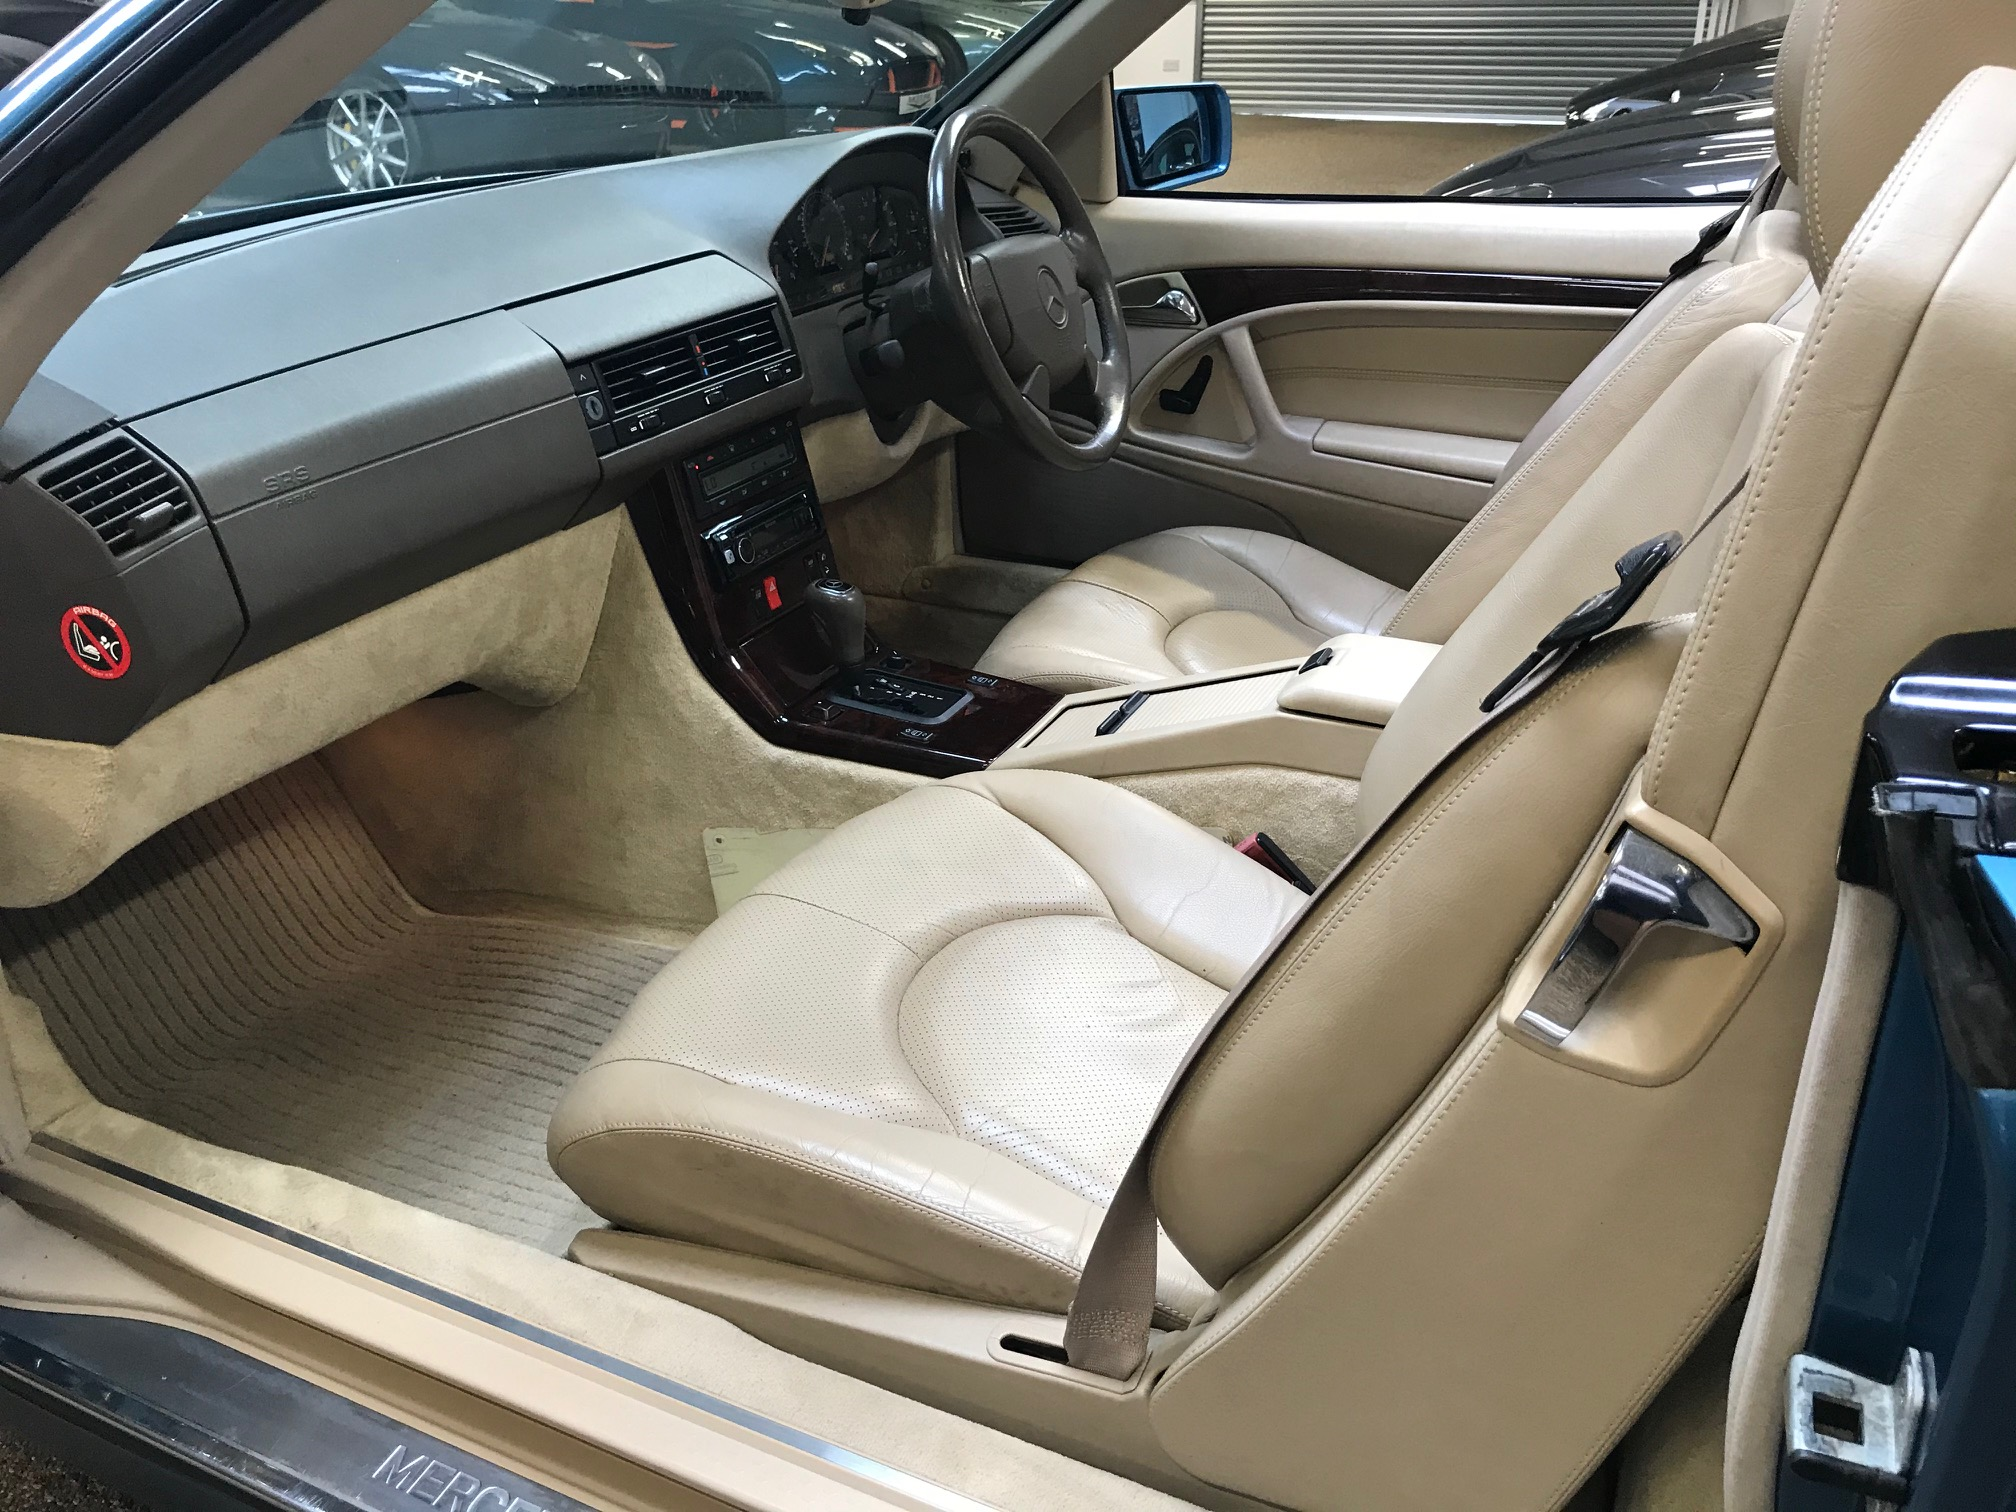 Used Mercedes SL320 for sale